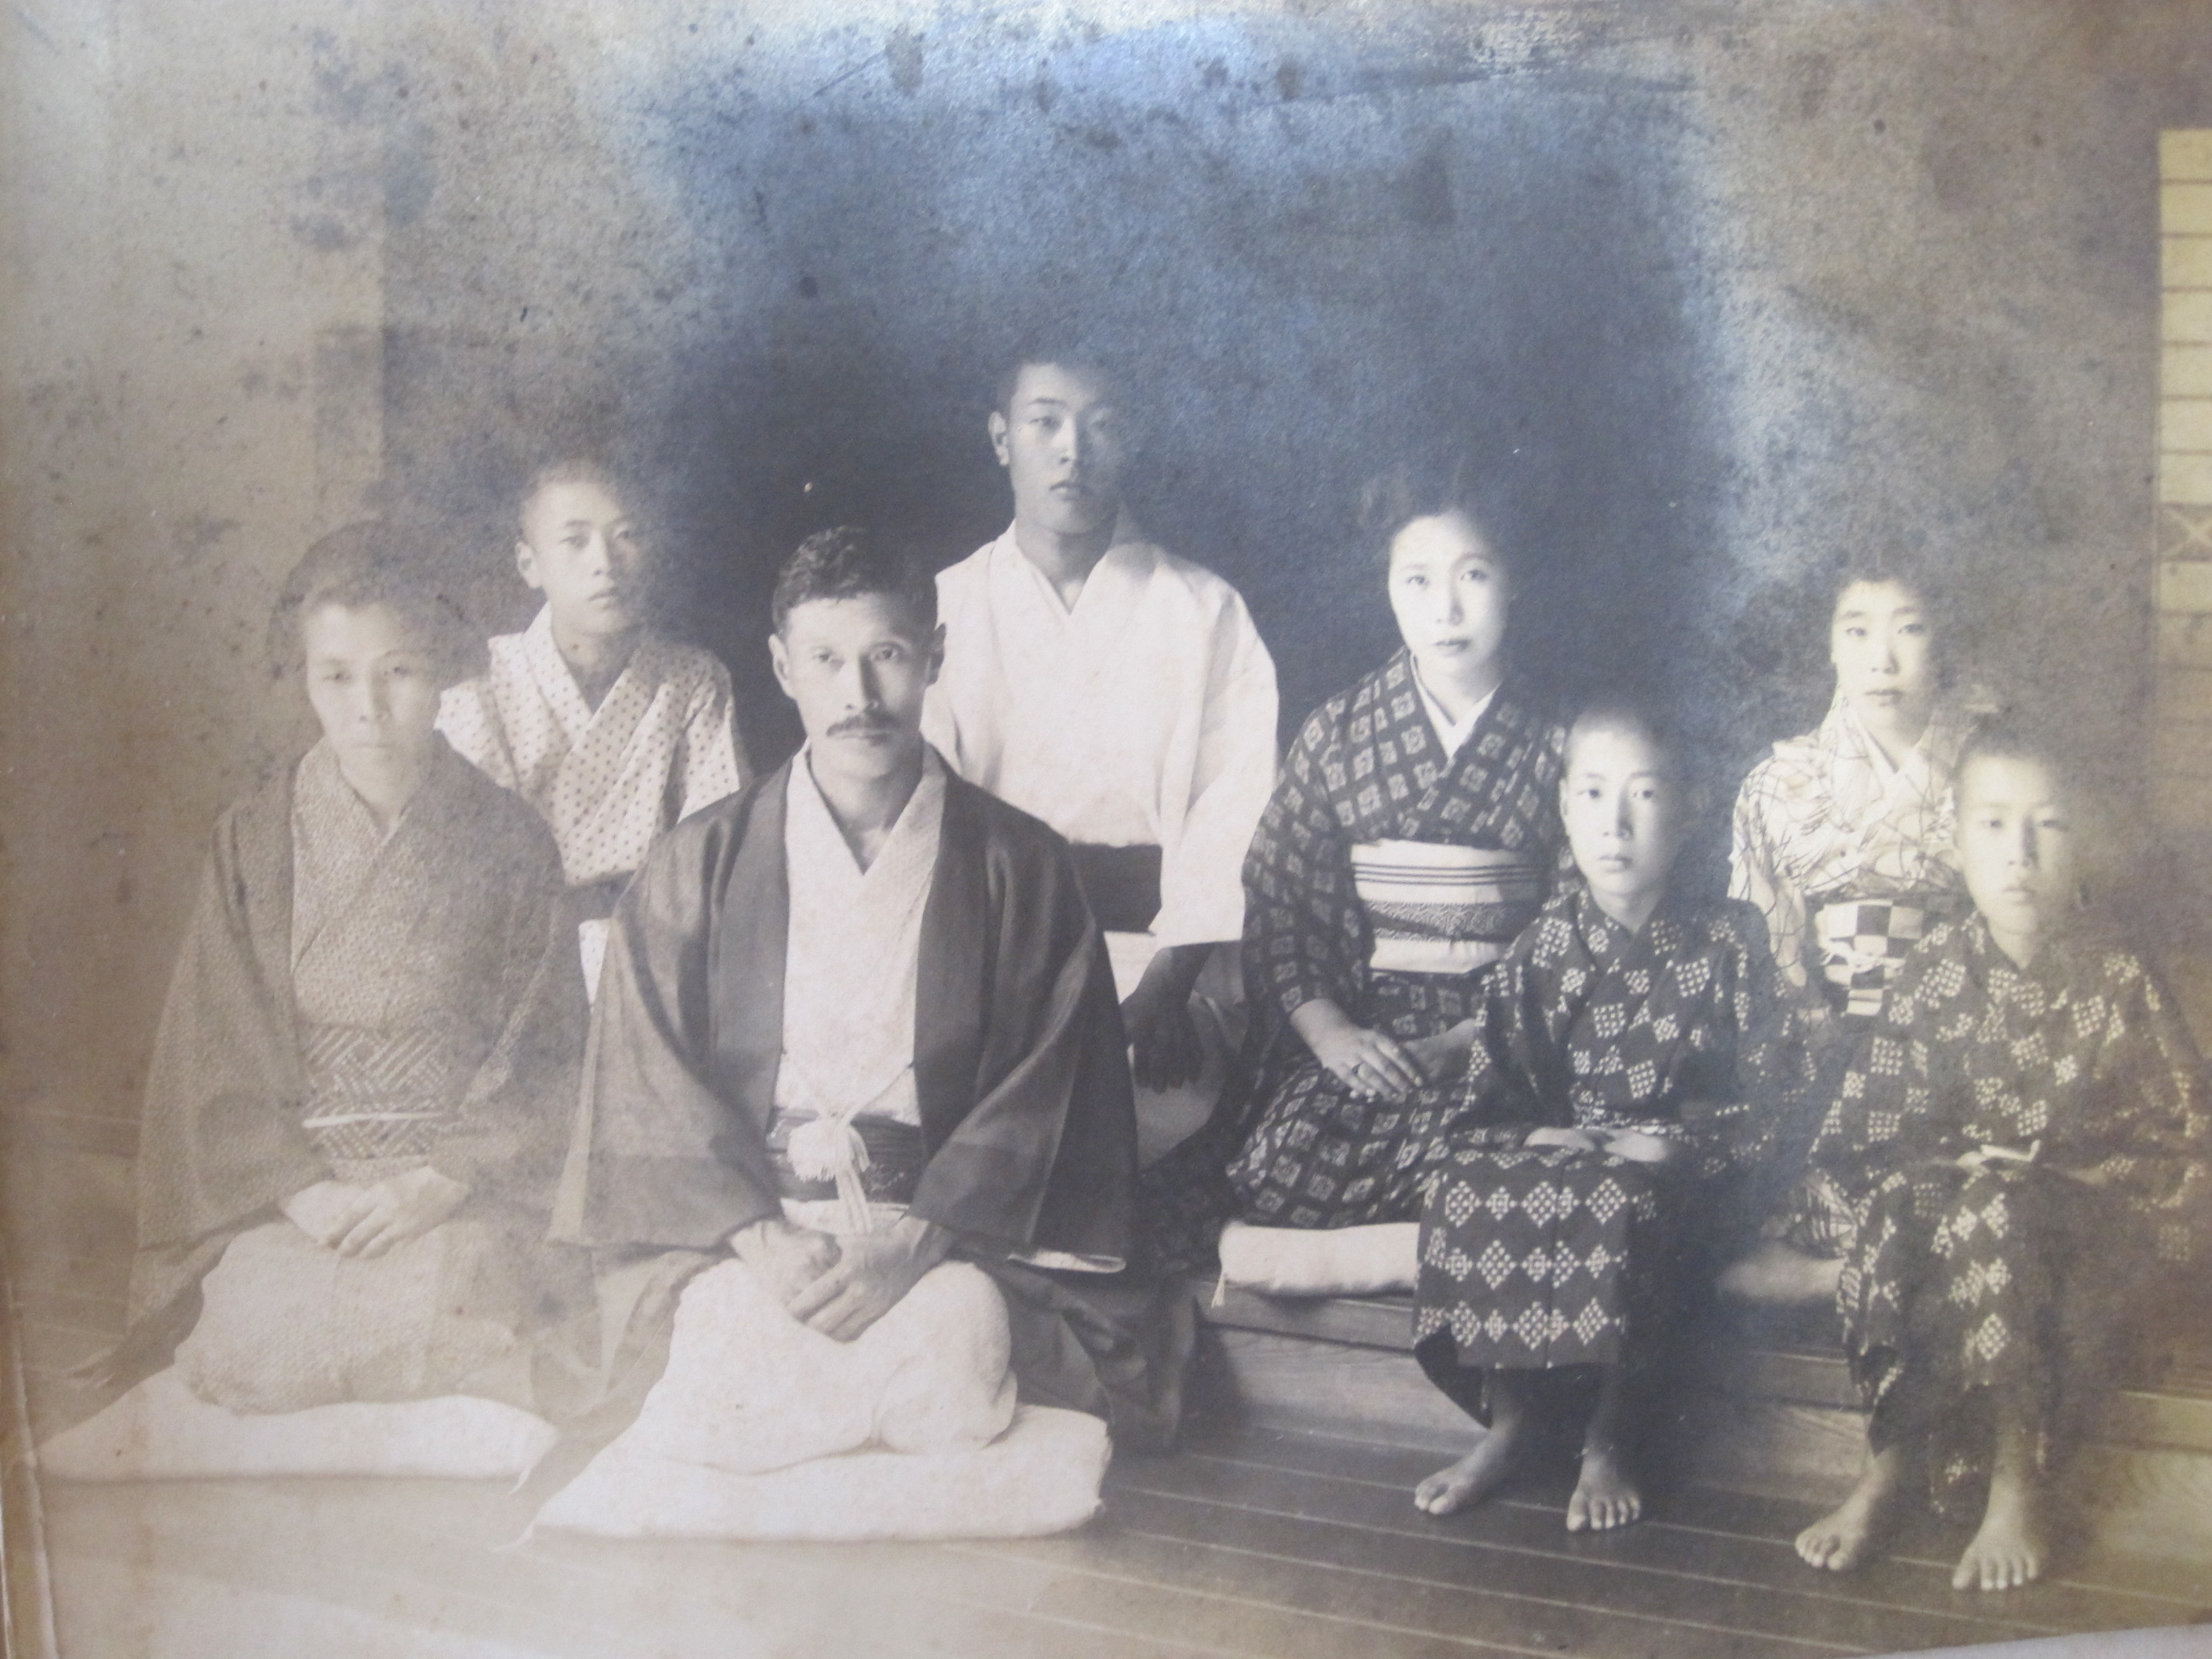 Their father is in white, and the tallest. He is second from the left, in back